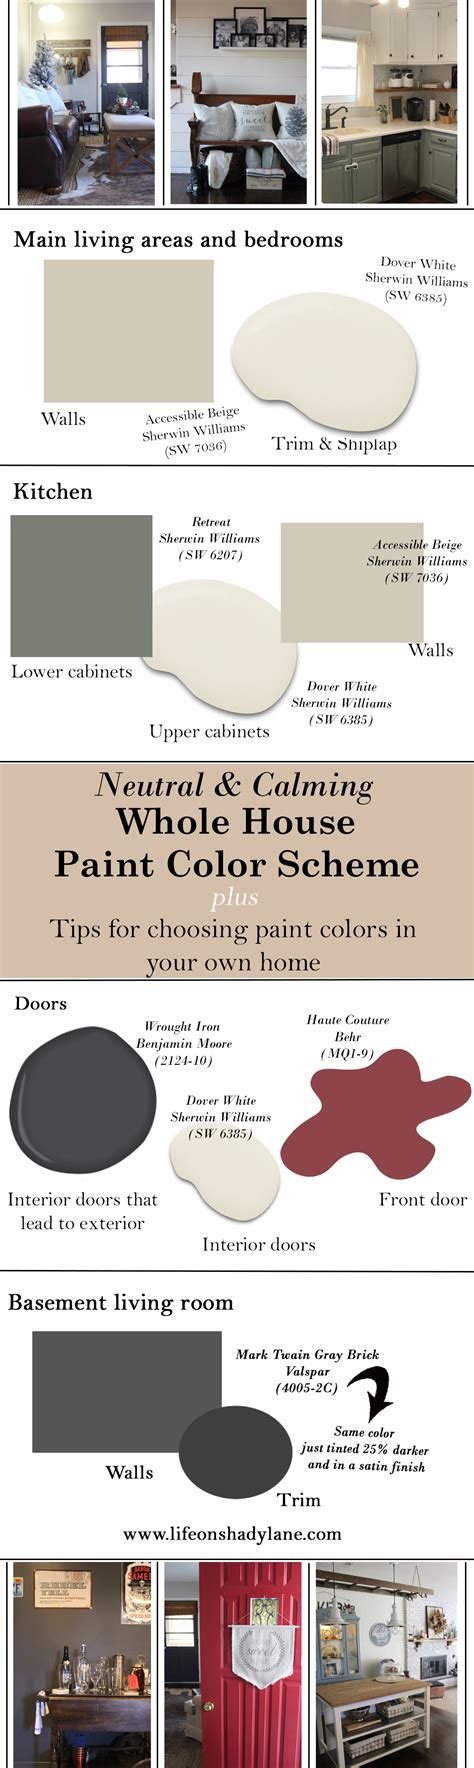 the paint colors we used in our home my tips on picking colors for your own home on